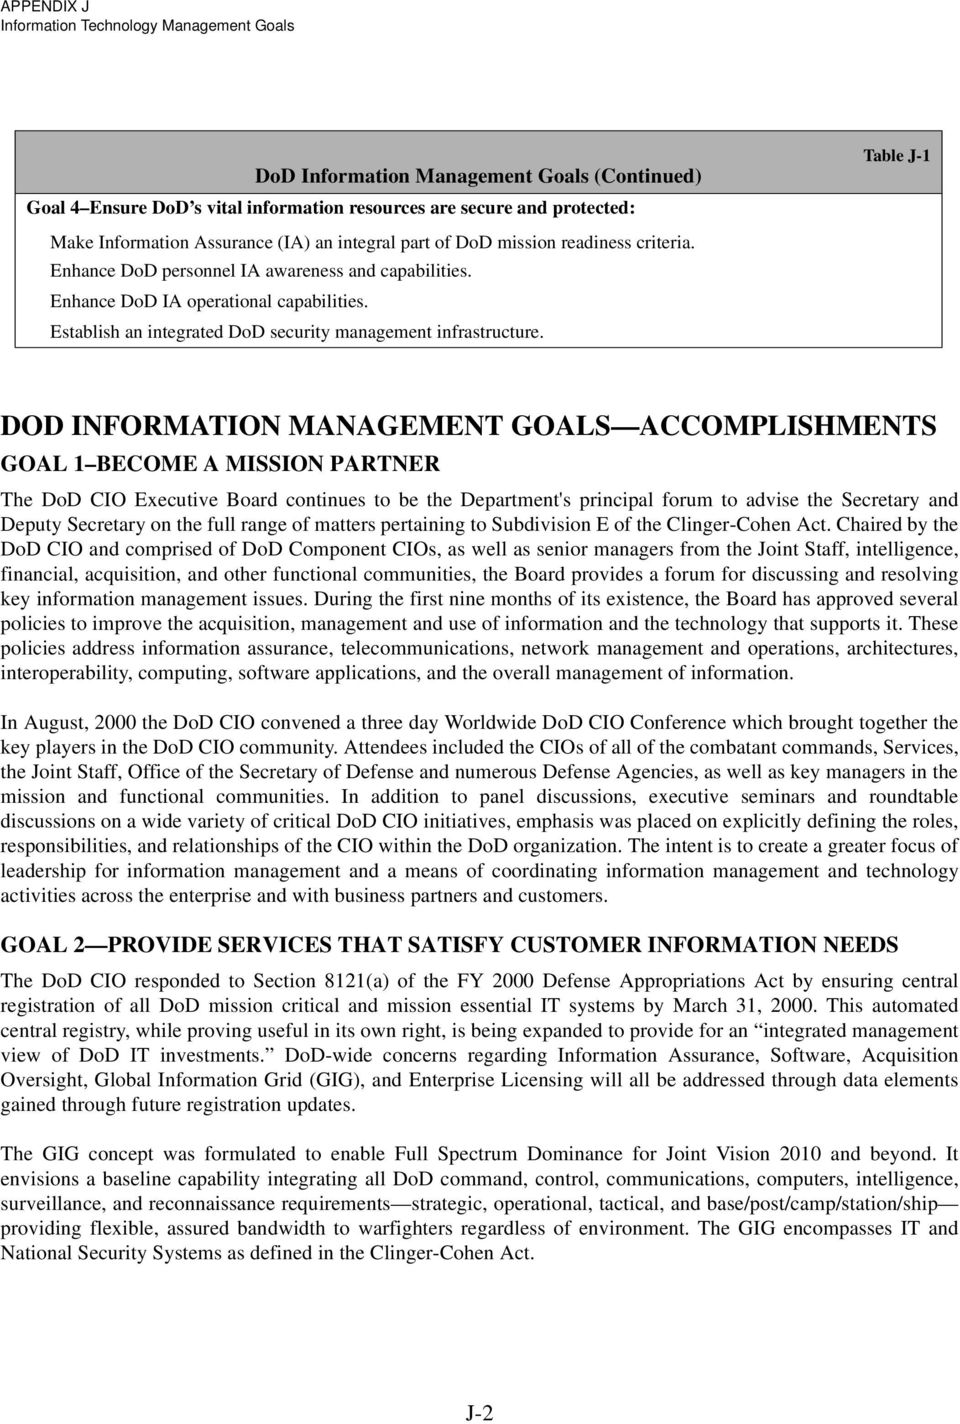 DOD INFORMATION MANAGEMENT GOALS ACCOMPLISHMENTS GOAL 1 BECOME A MISSION PARTNER The DoD CIO Executive Board continues to be the Department's principal forum to advise the Secretary and Deputy